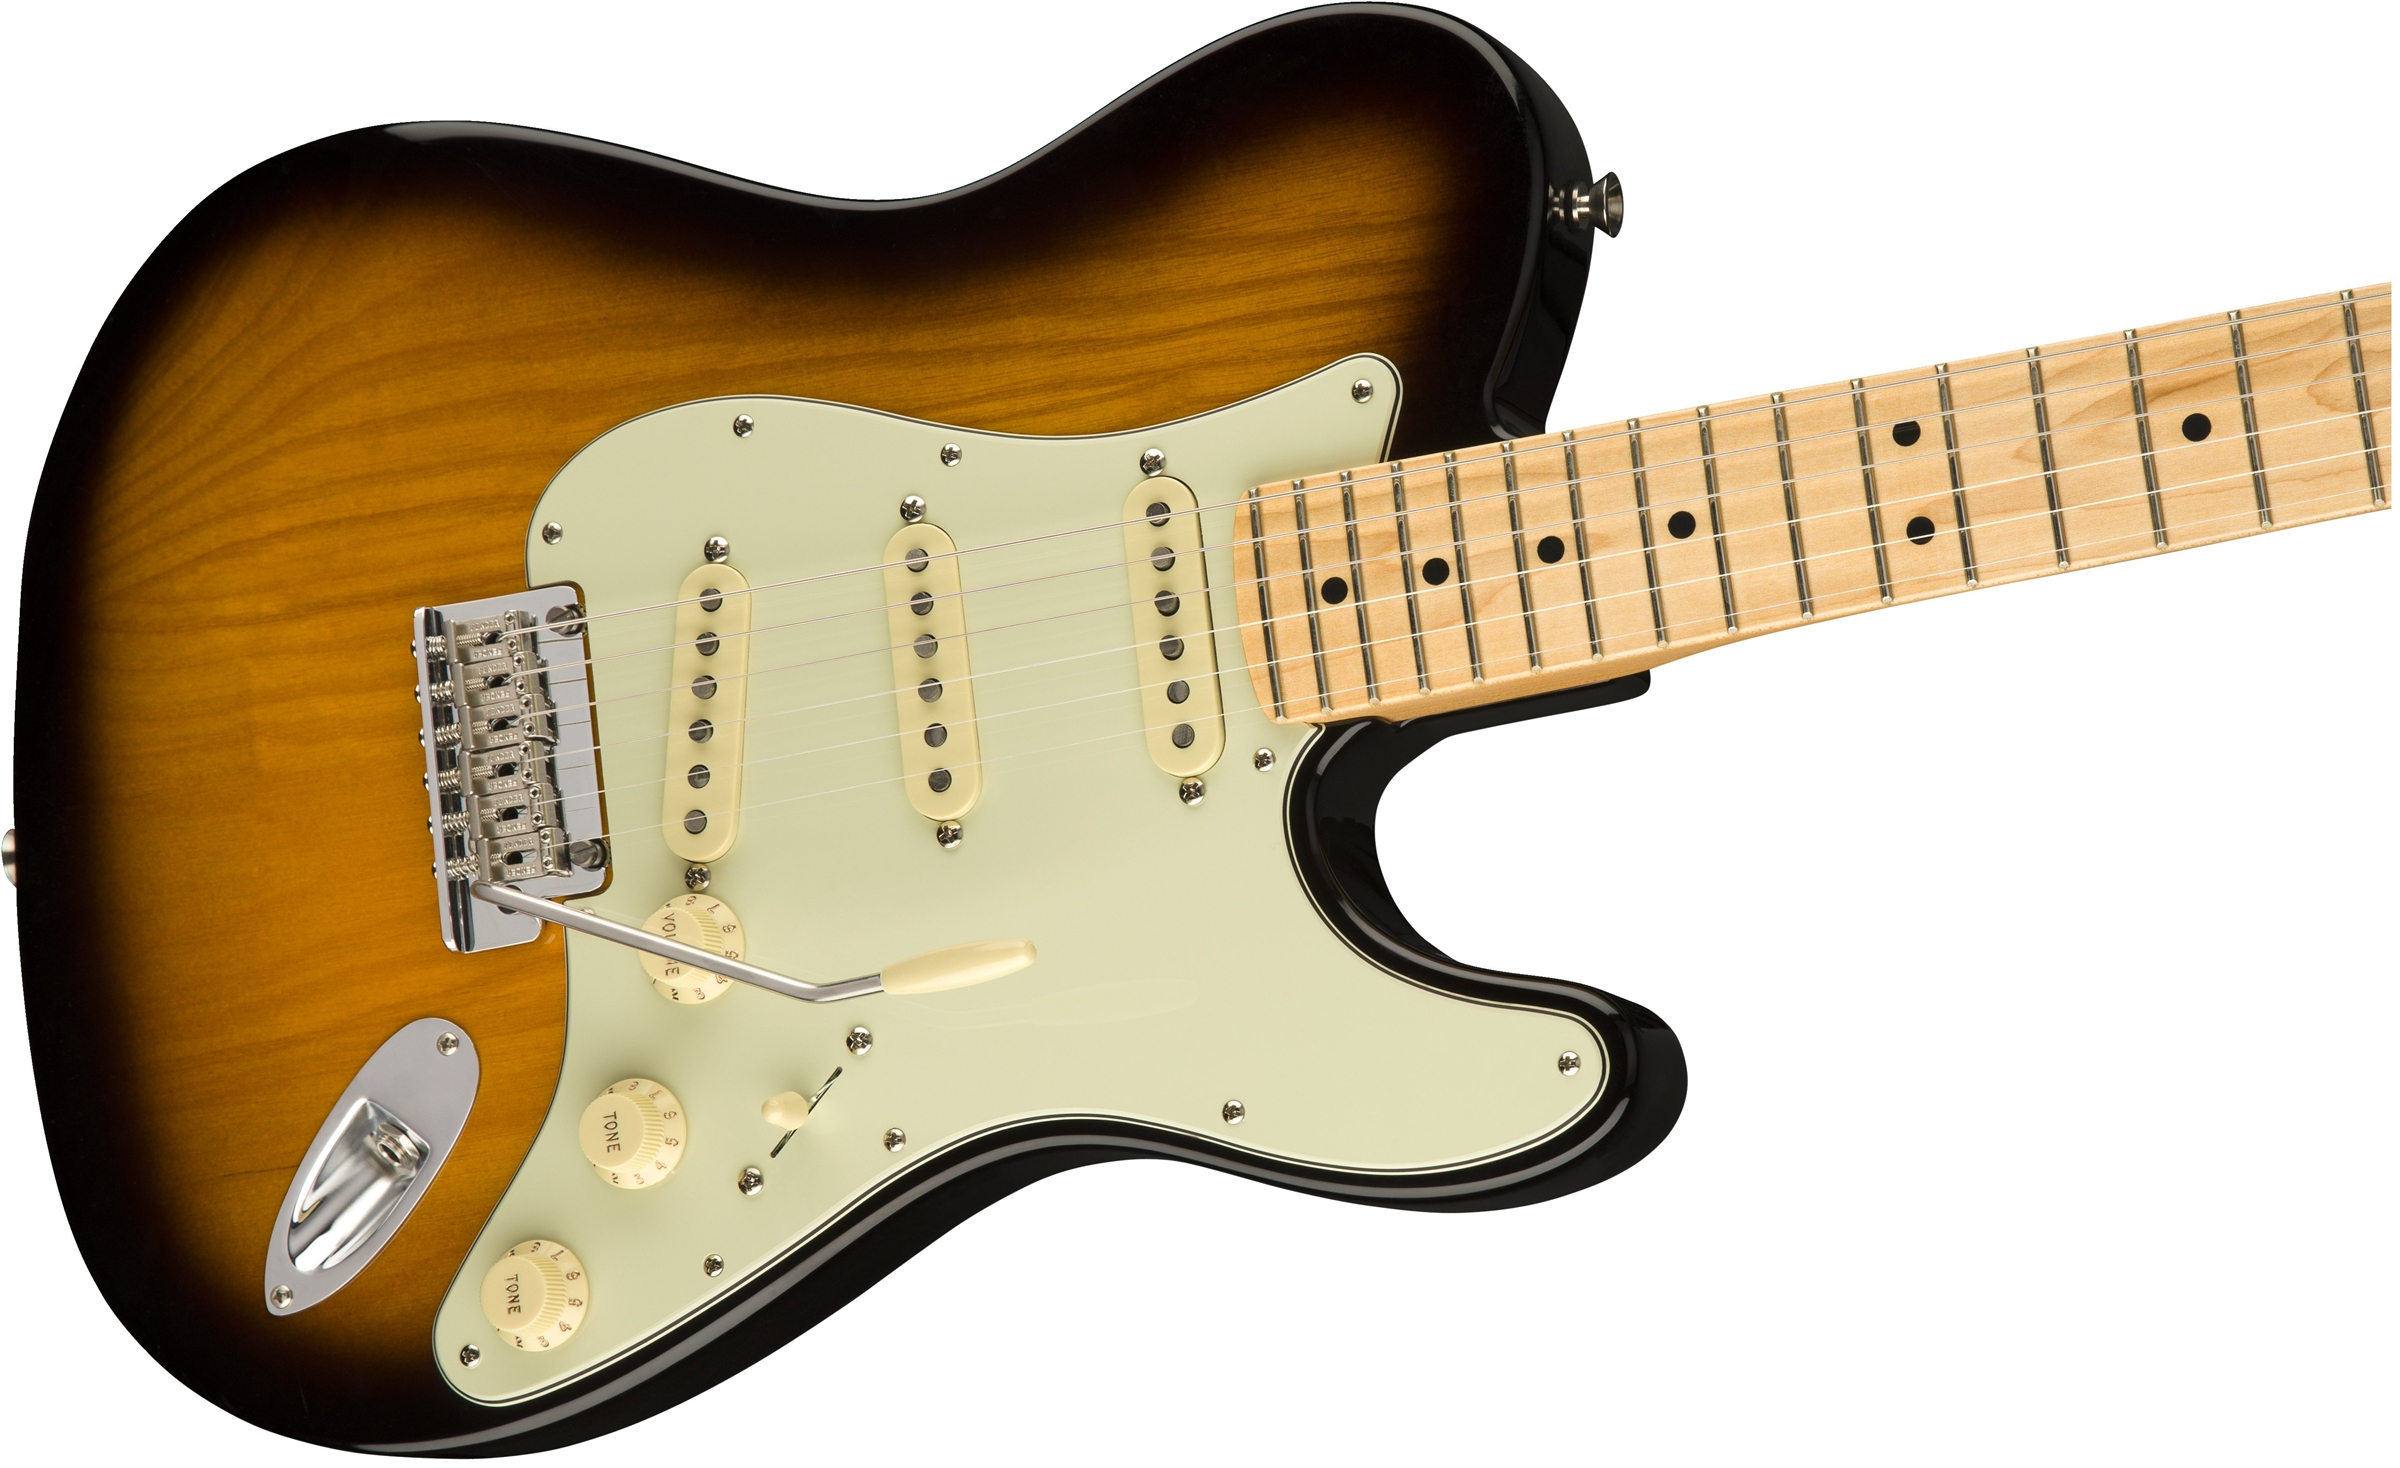 2018 Limited Edition Strat Tele Hybrid Electric Guitars Fender Telecaster 3 Pickup 5 Way Switch Wiring Free Download Tap To Expand